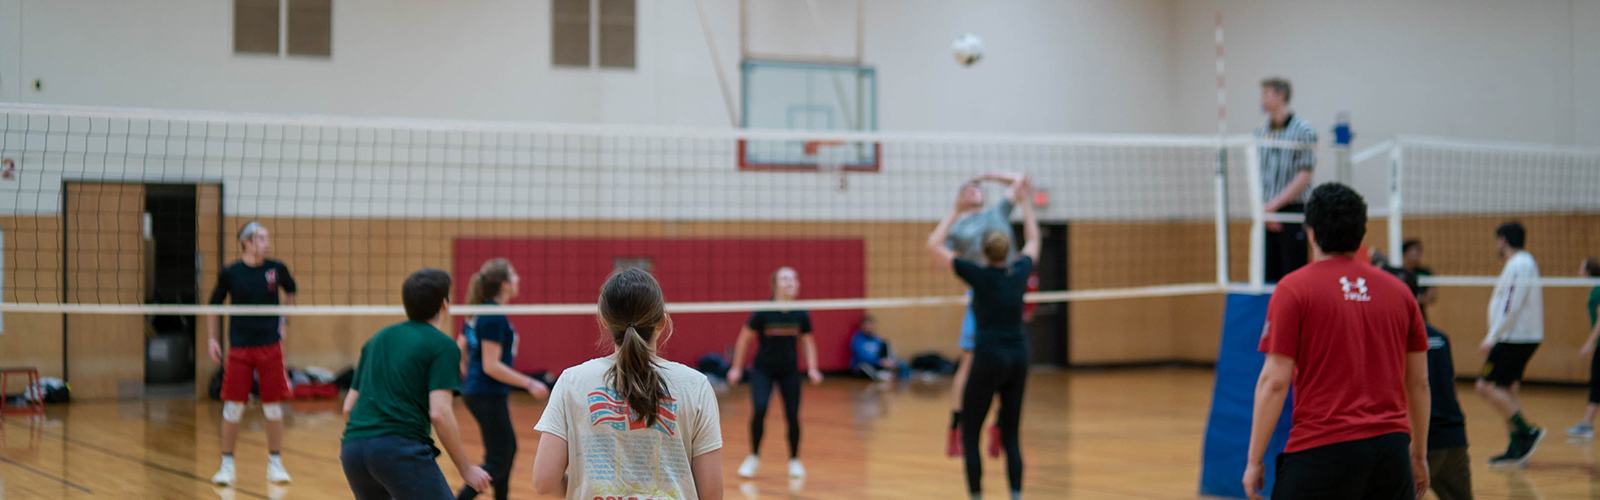 Photo of an intramural indoor volleyball game being played at the Natatorium courts